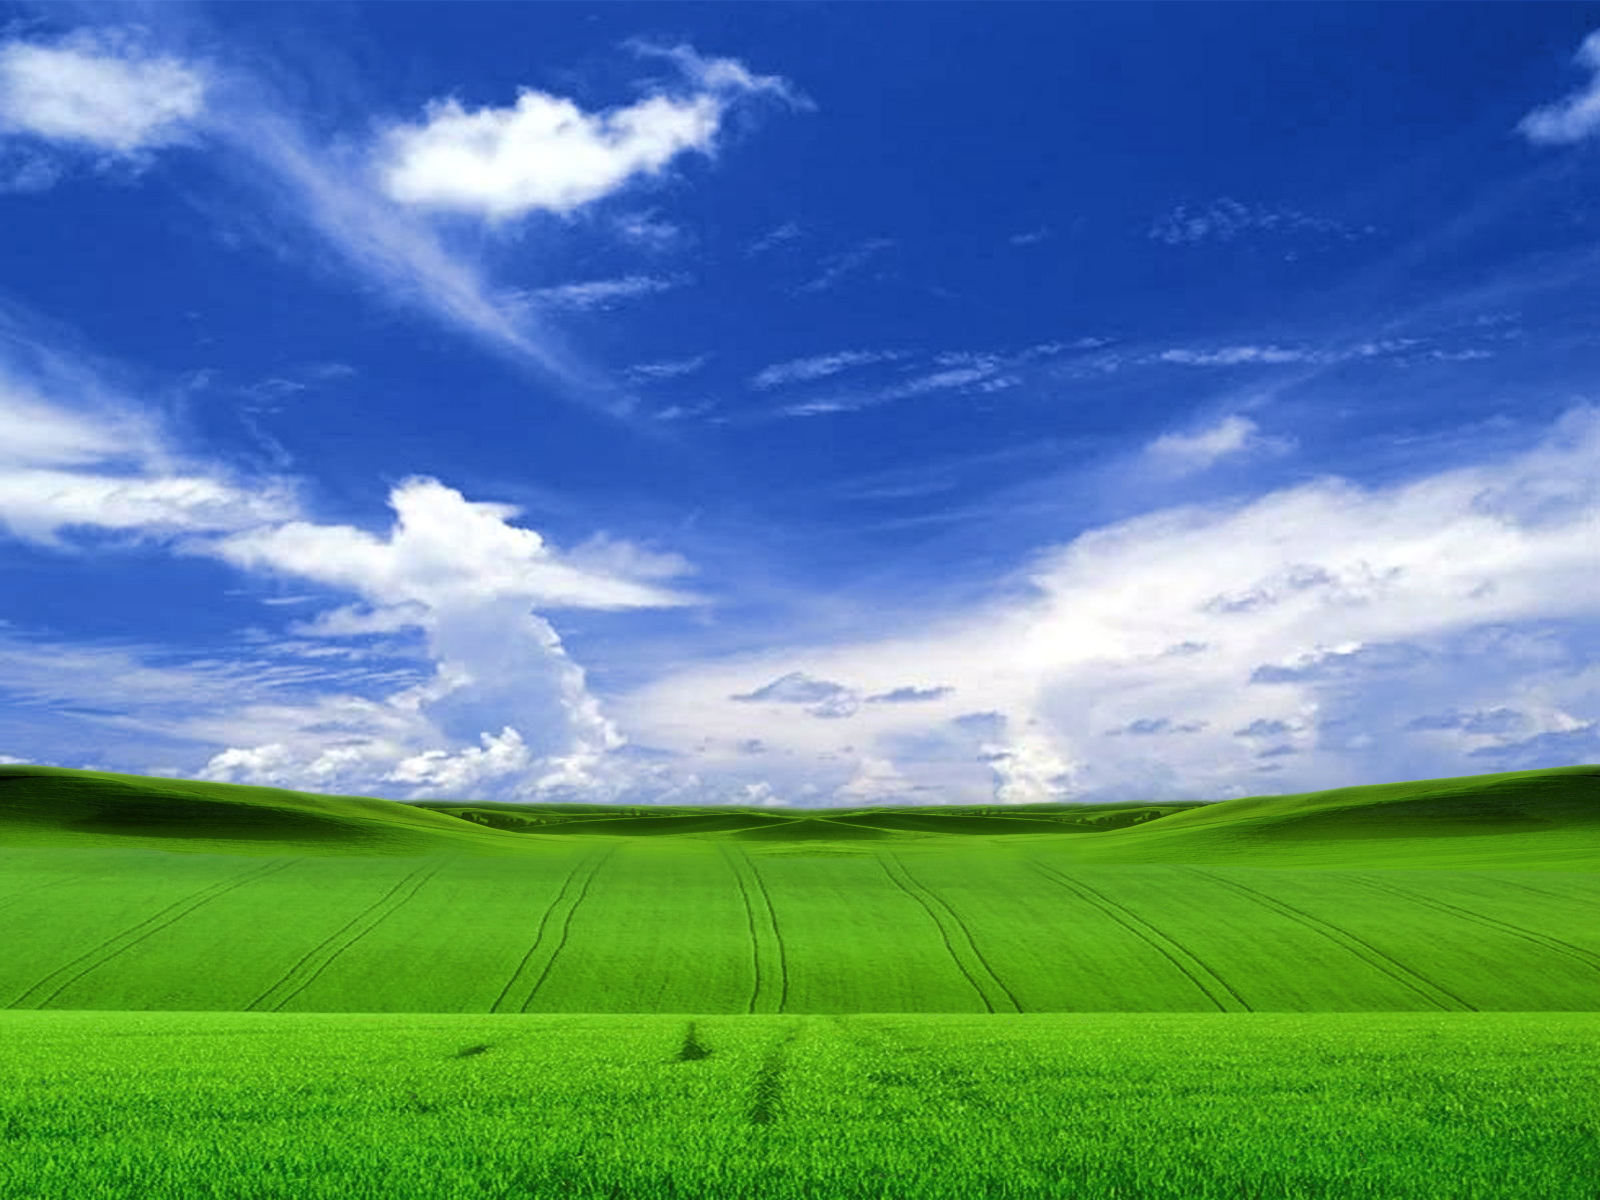 Windows xp hd wallpaper wallpapers for In wallpaper